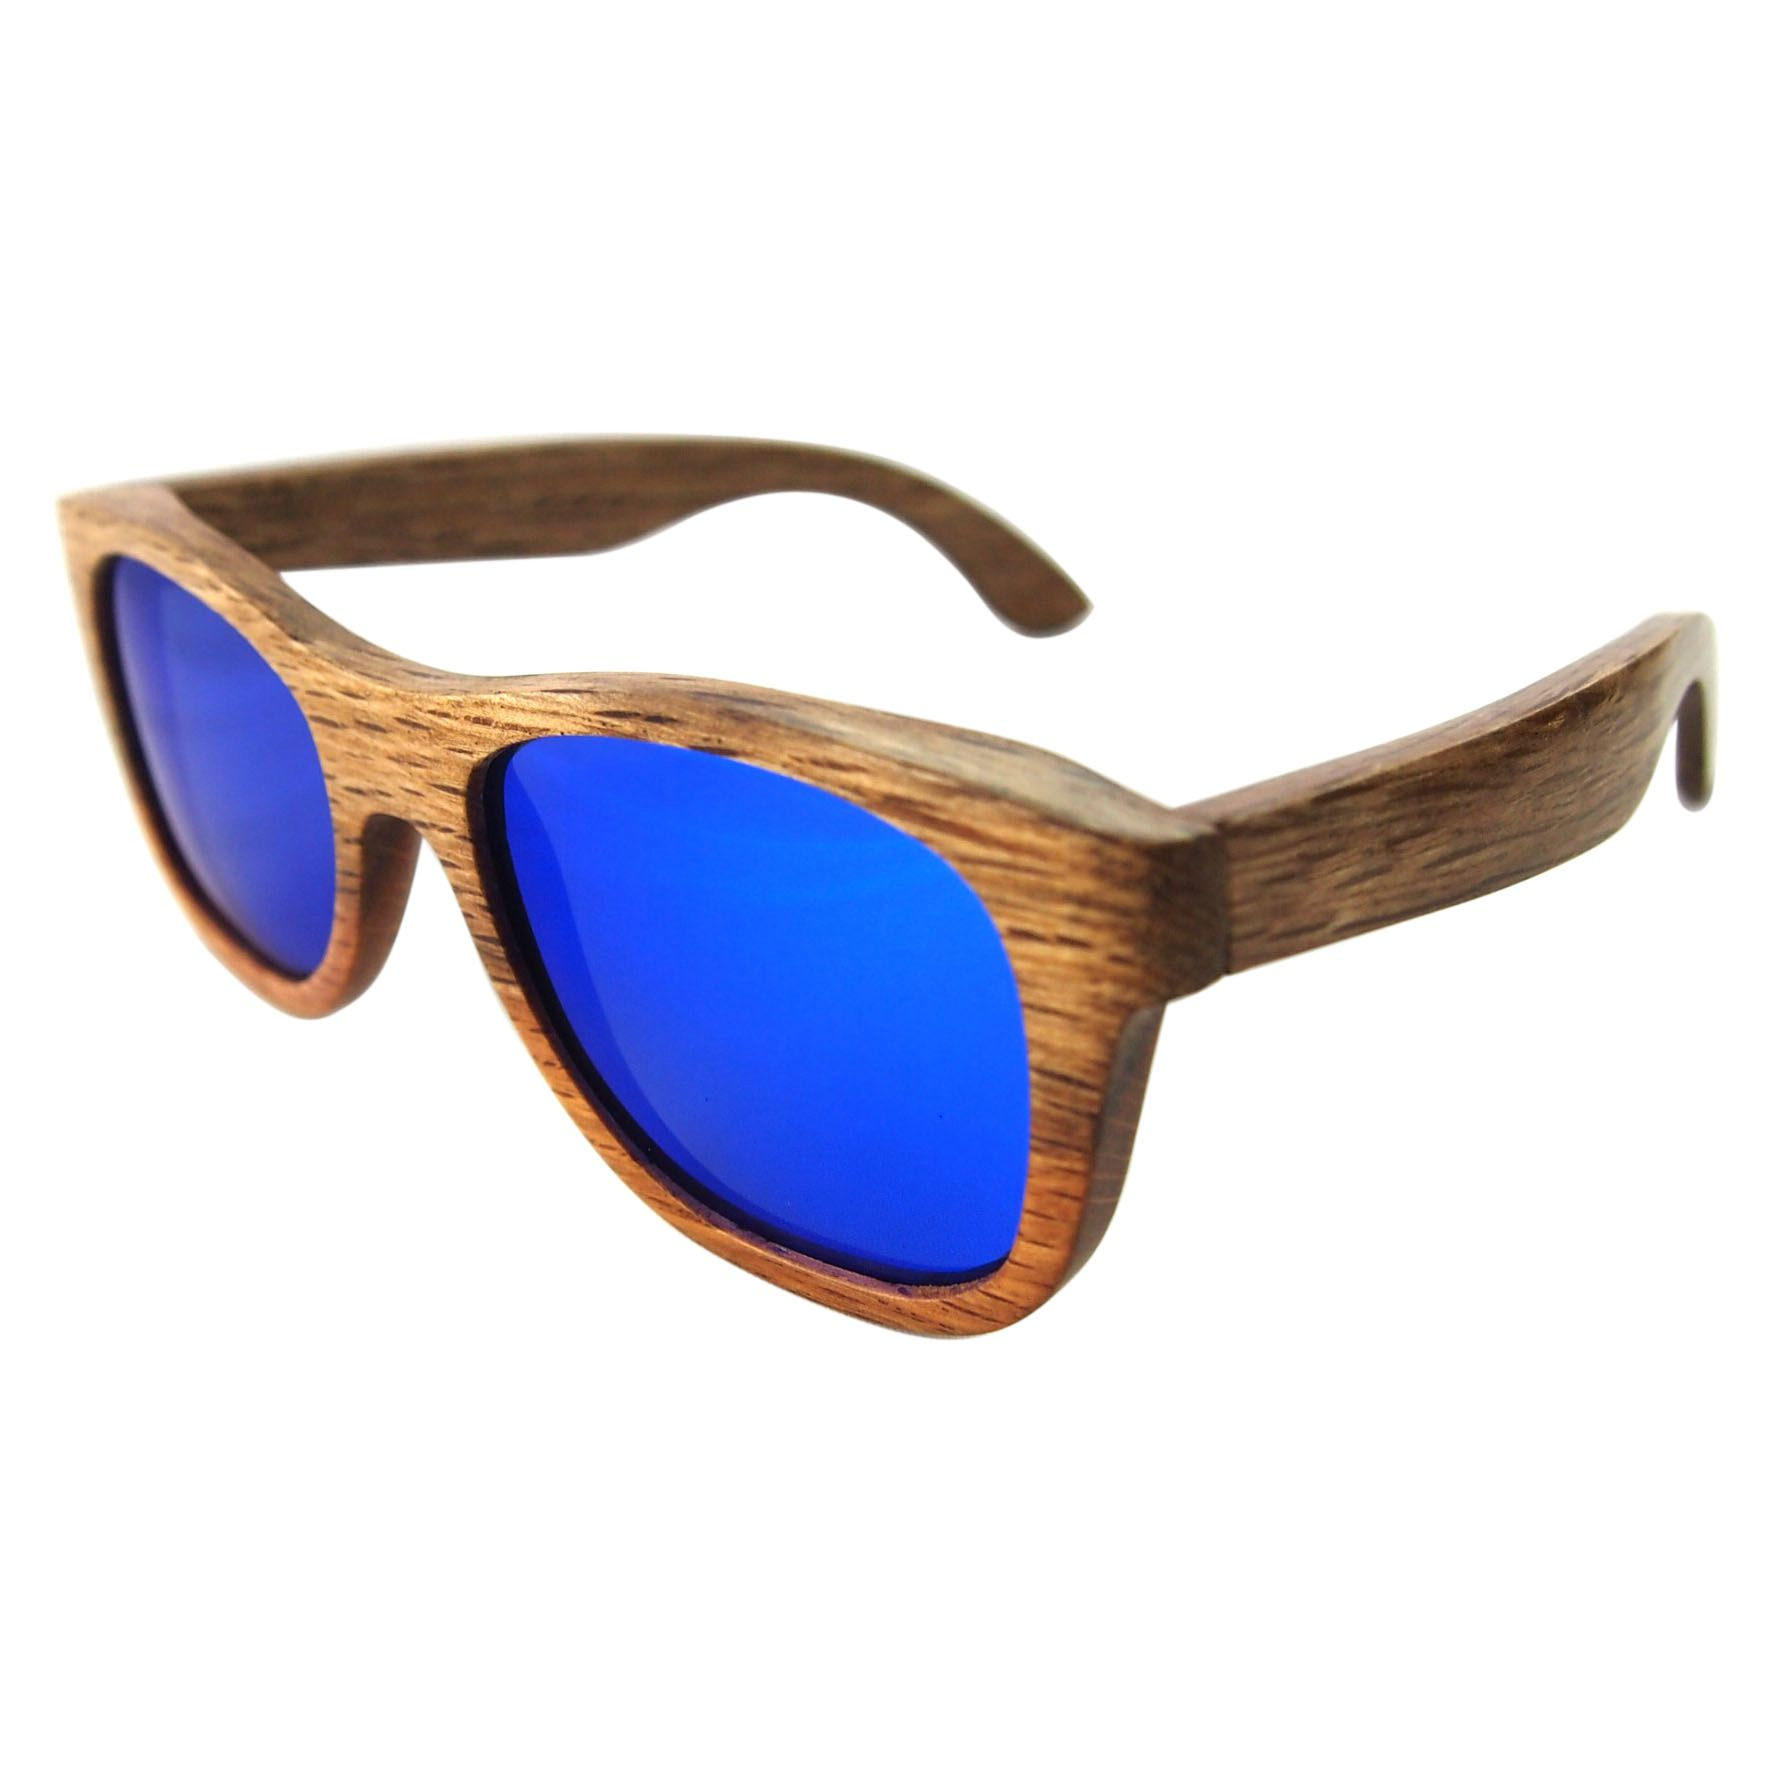 Homex Wooden Sunglasses Homex